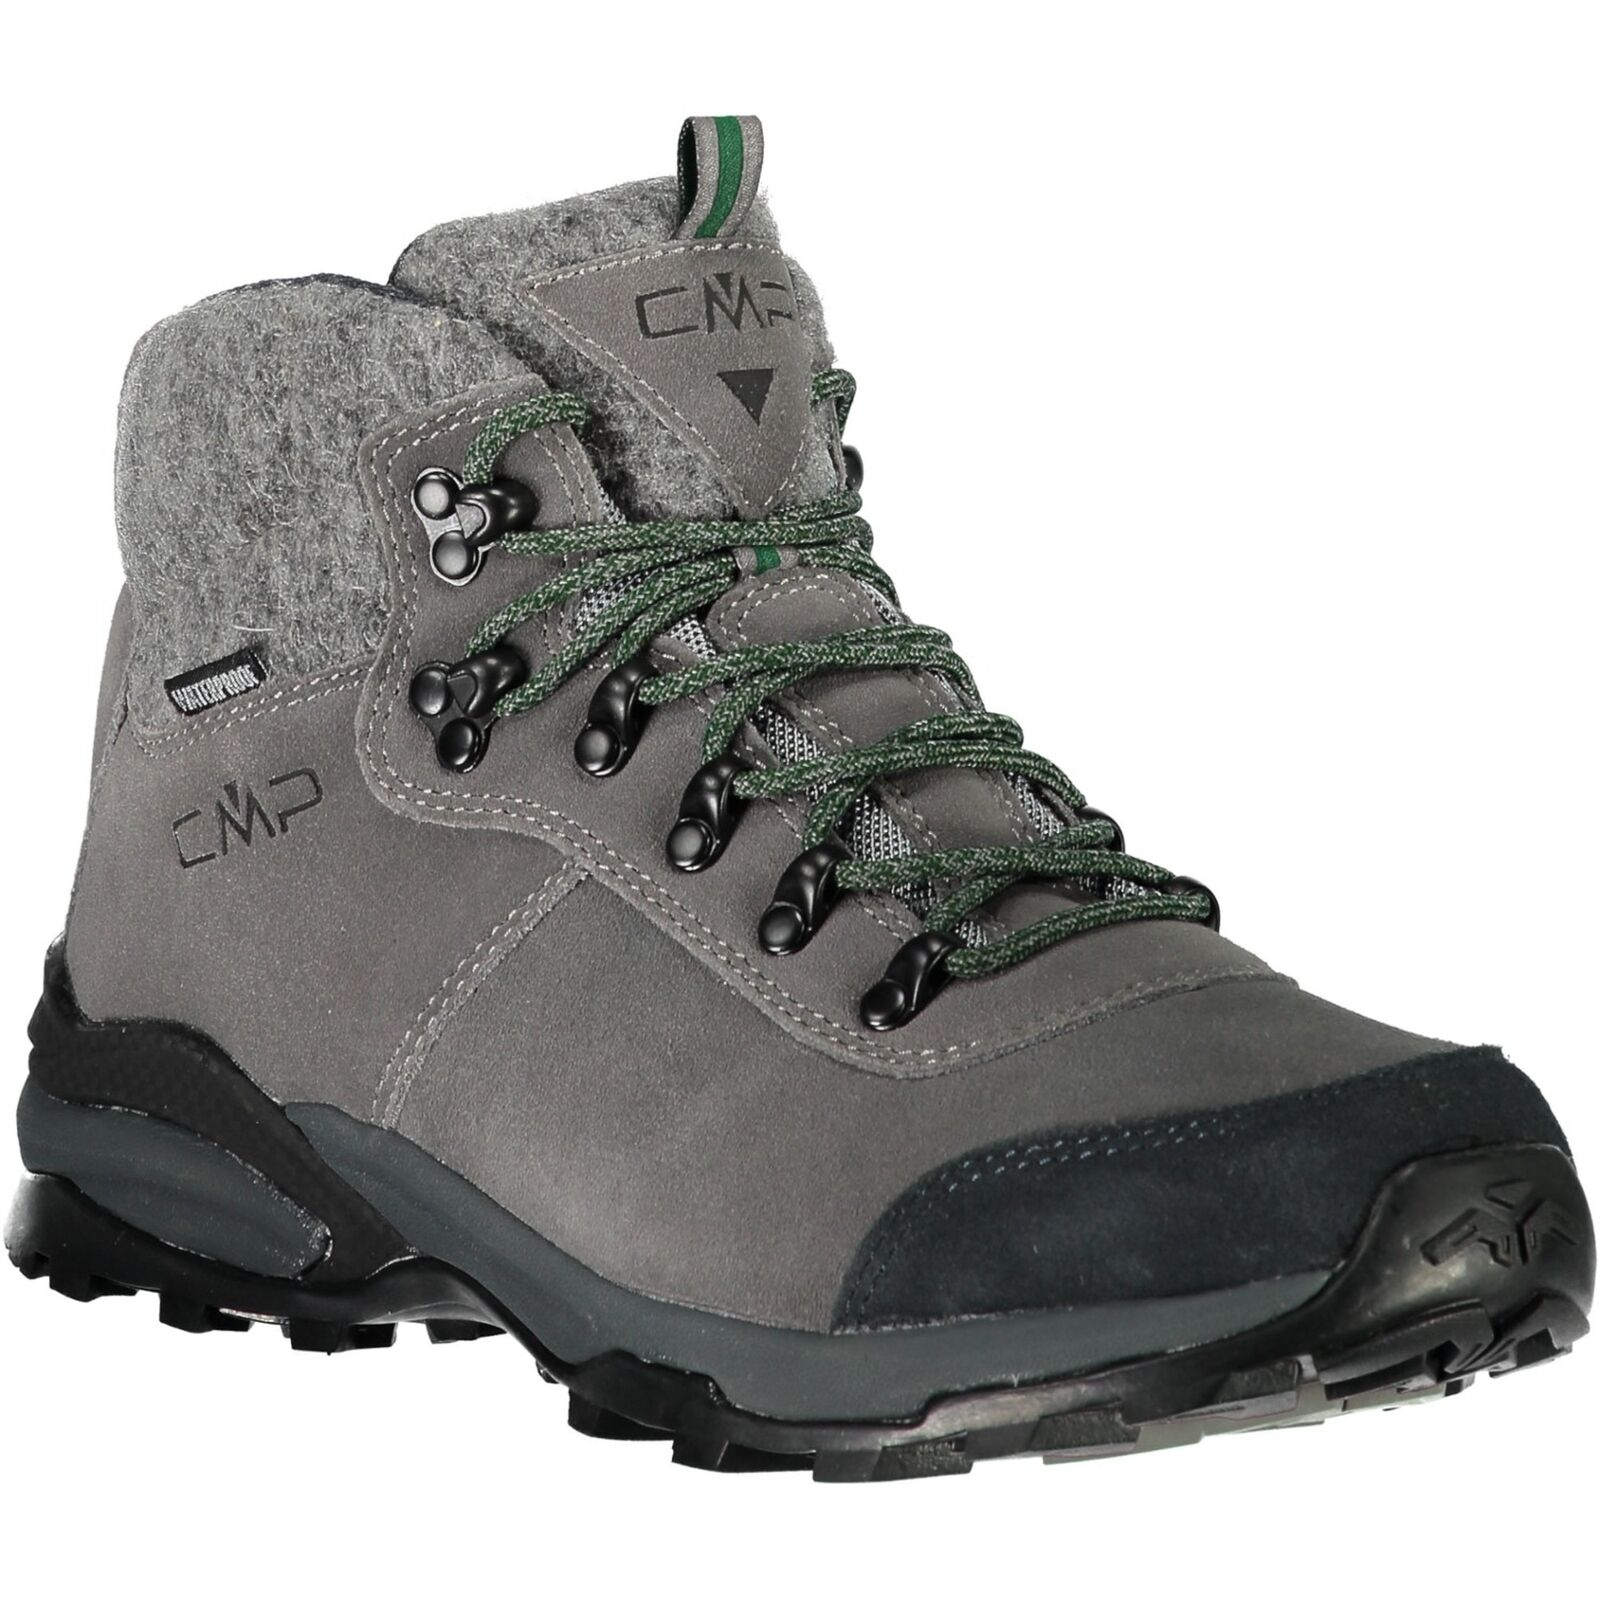 CMP shoes da Trekking shoes Tempo Libero Turais Trekking shoes Wp 2.0 grey